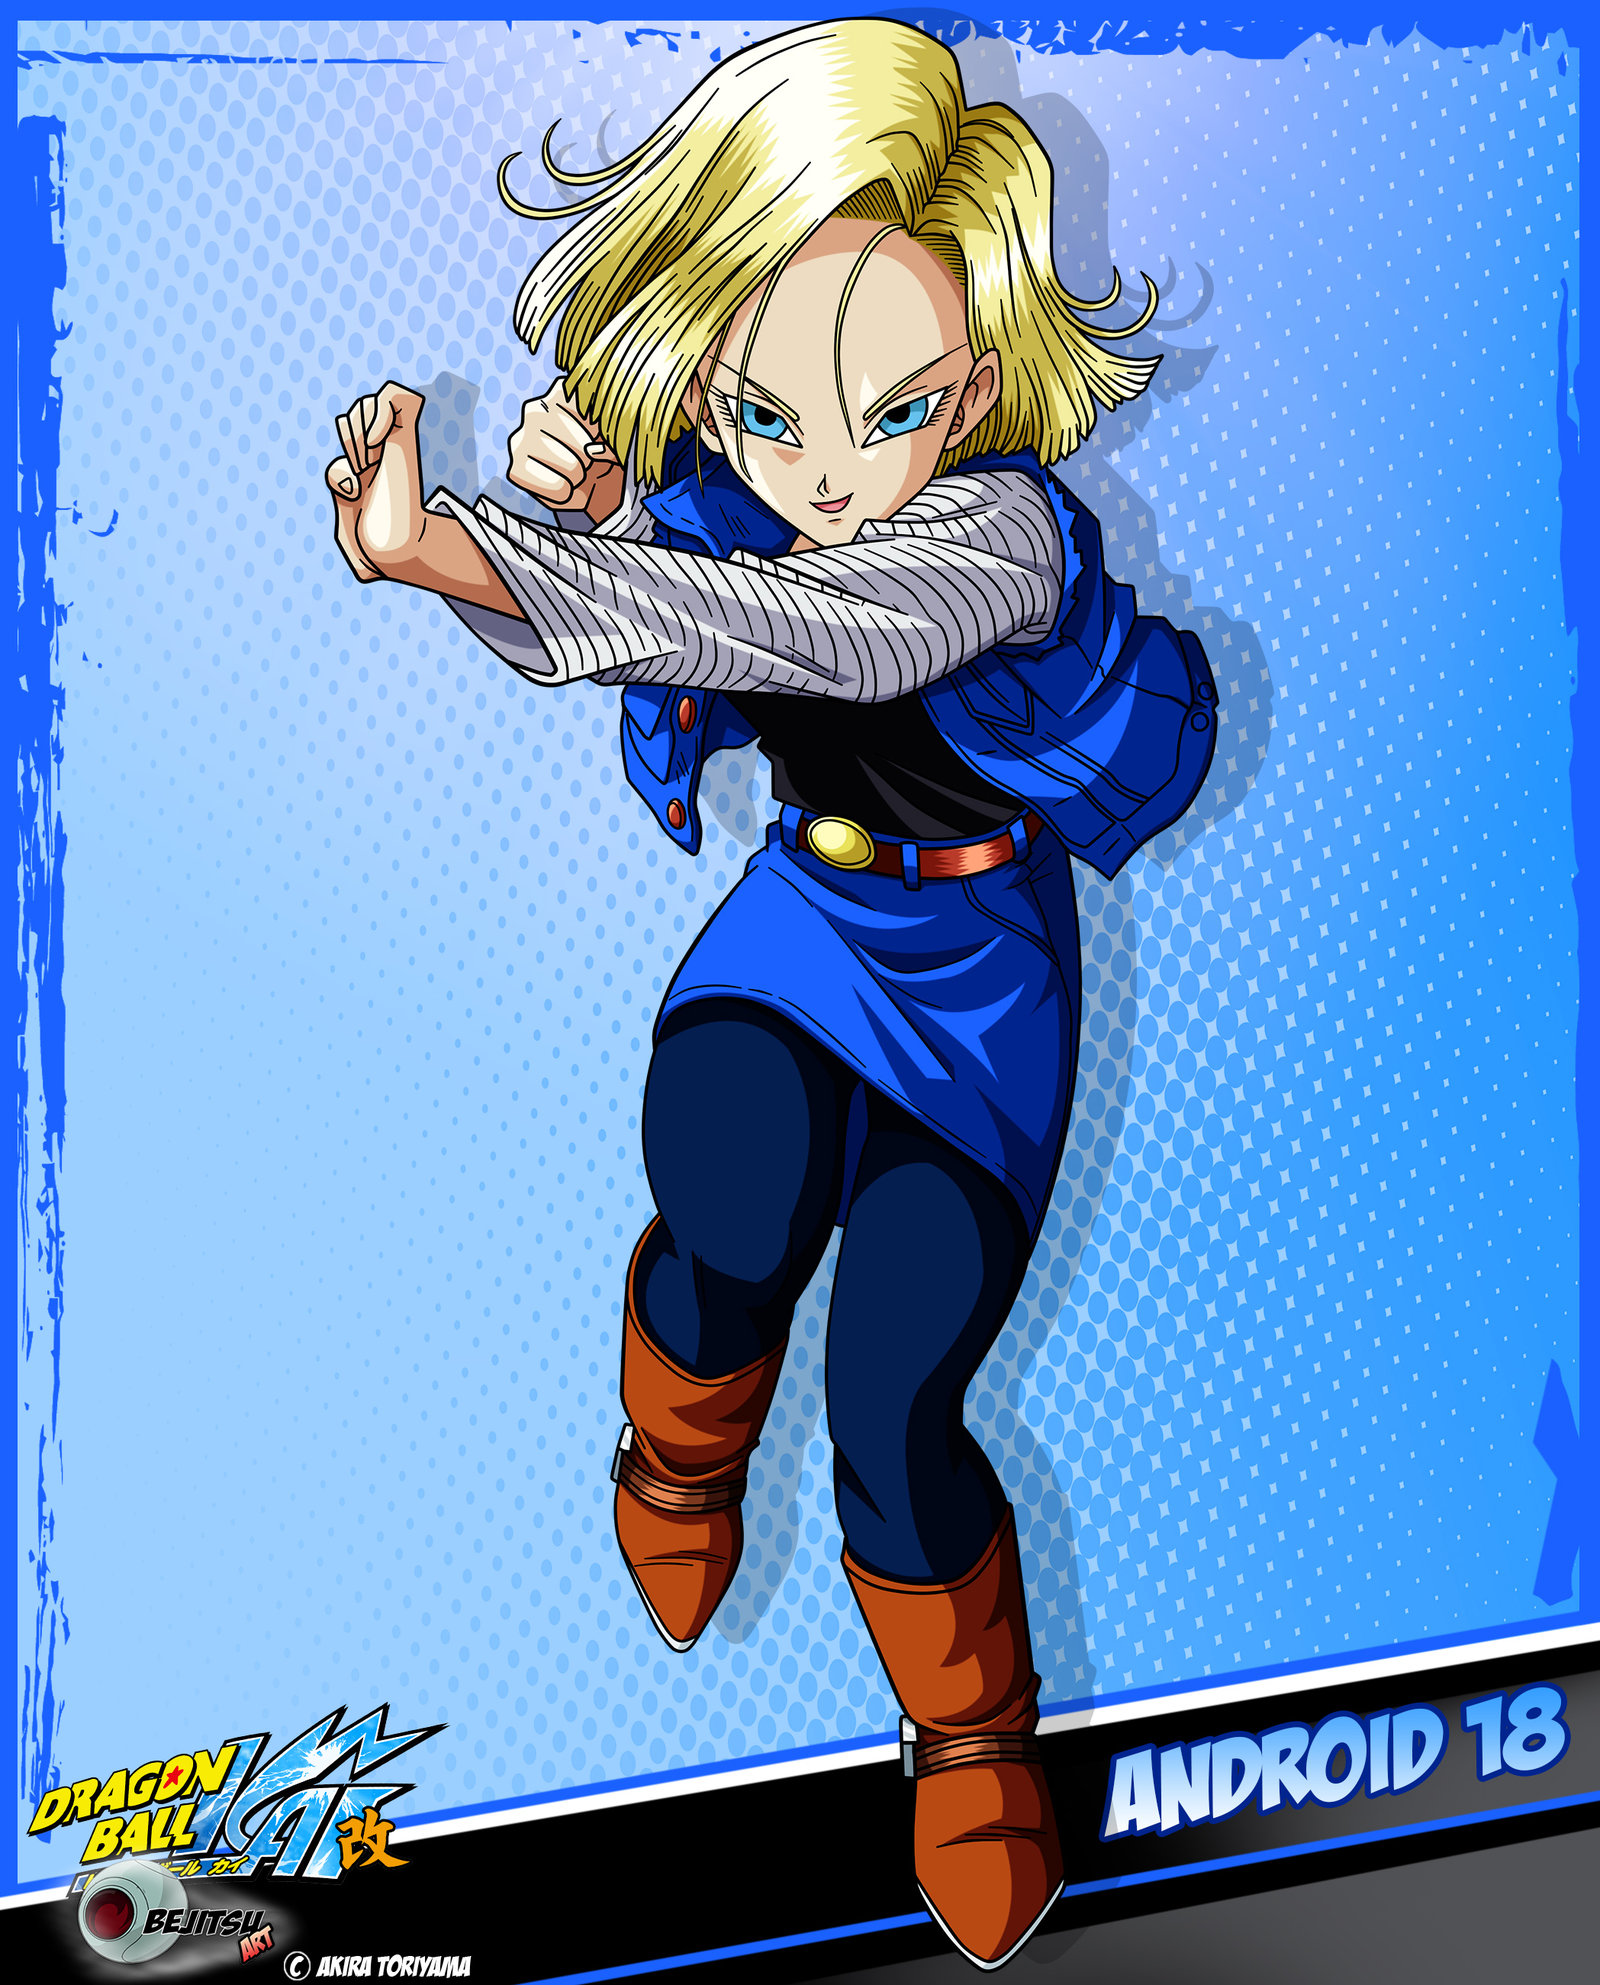 Android 18 dragon ball z page 2 of 5 zerochan anime image board - Dragon ball zc 18 ...